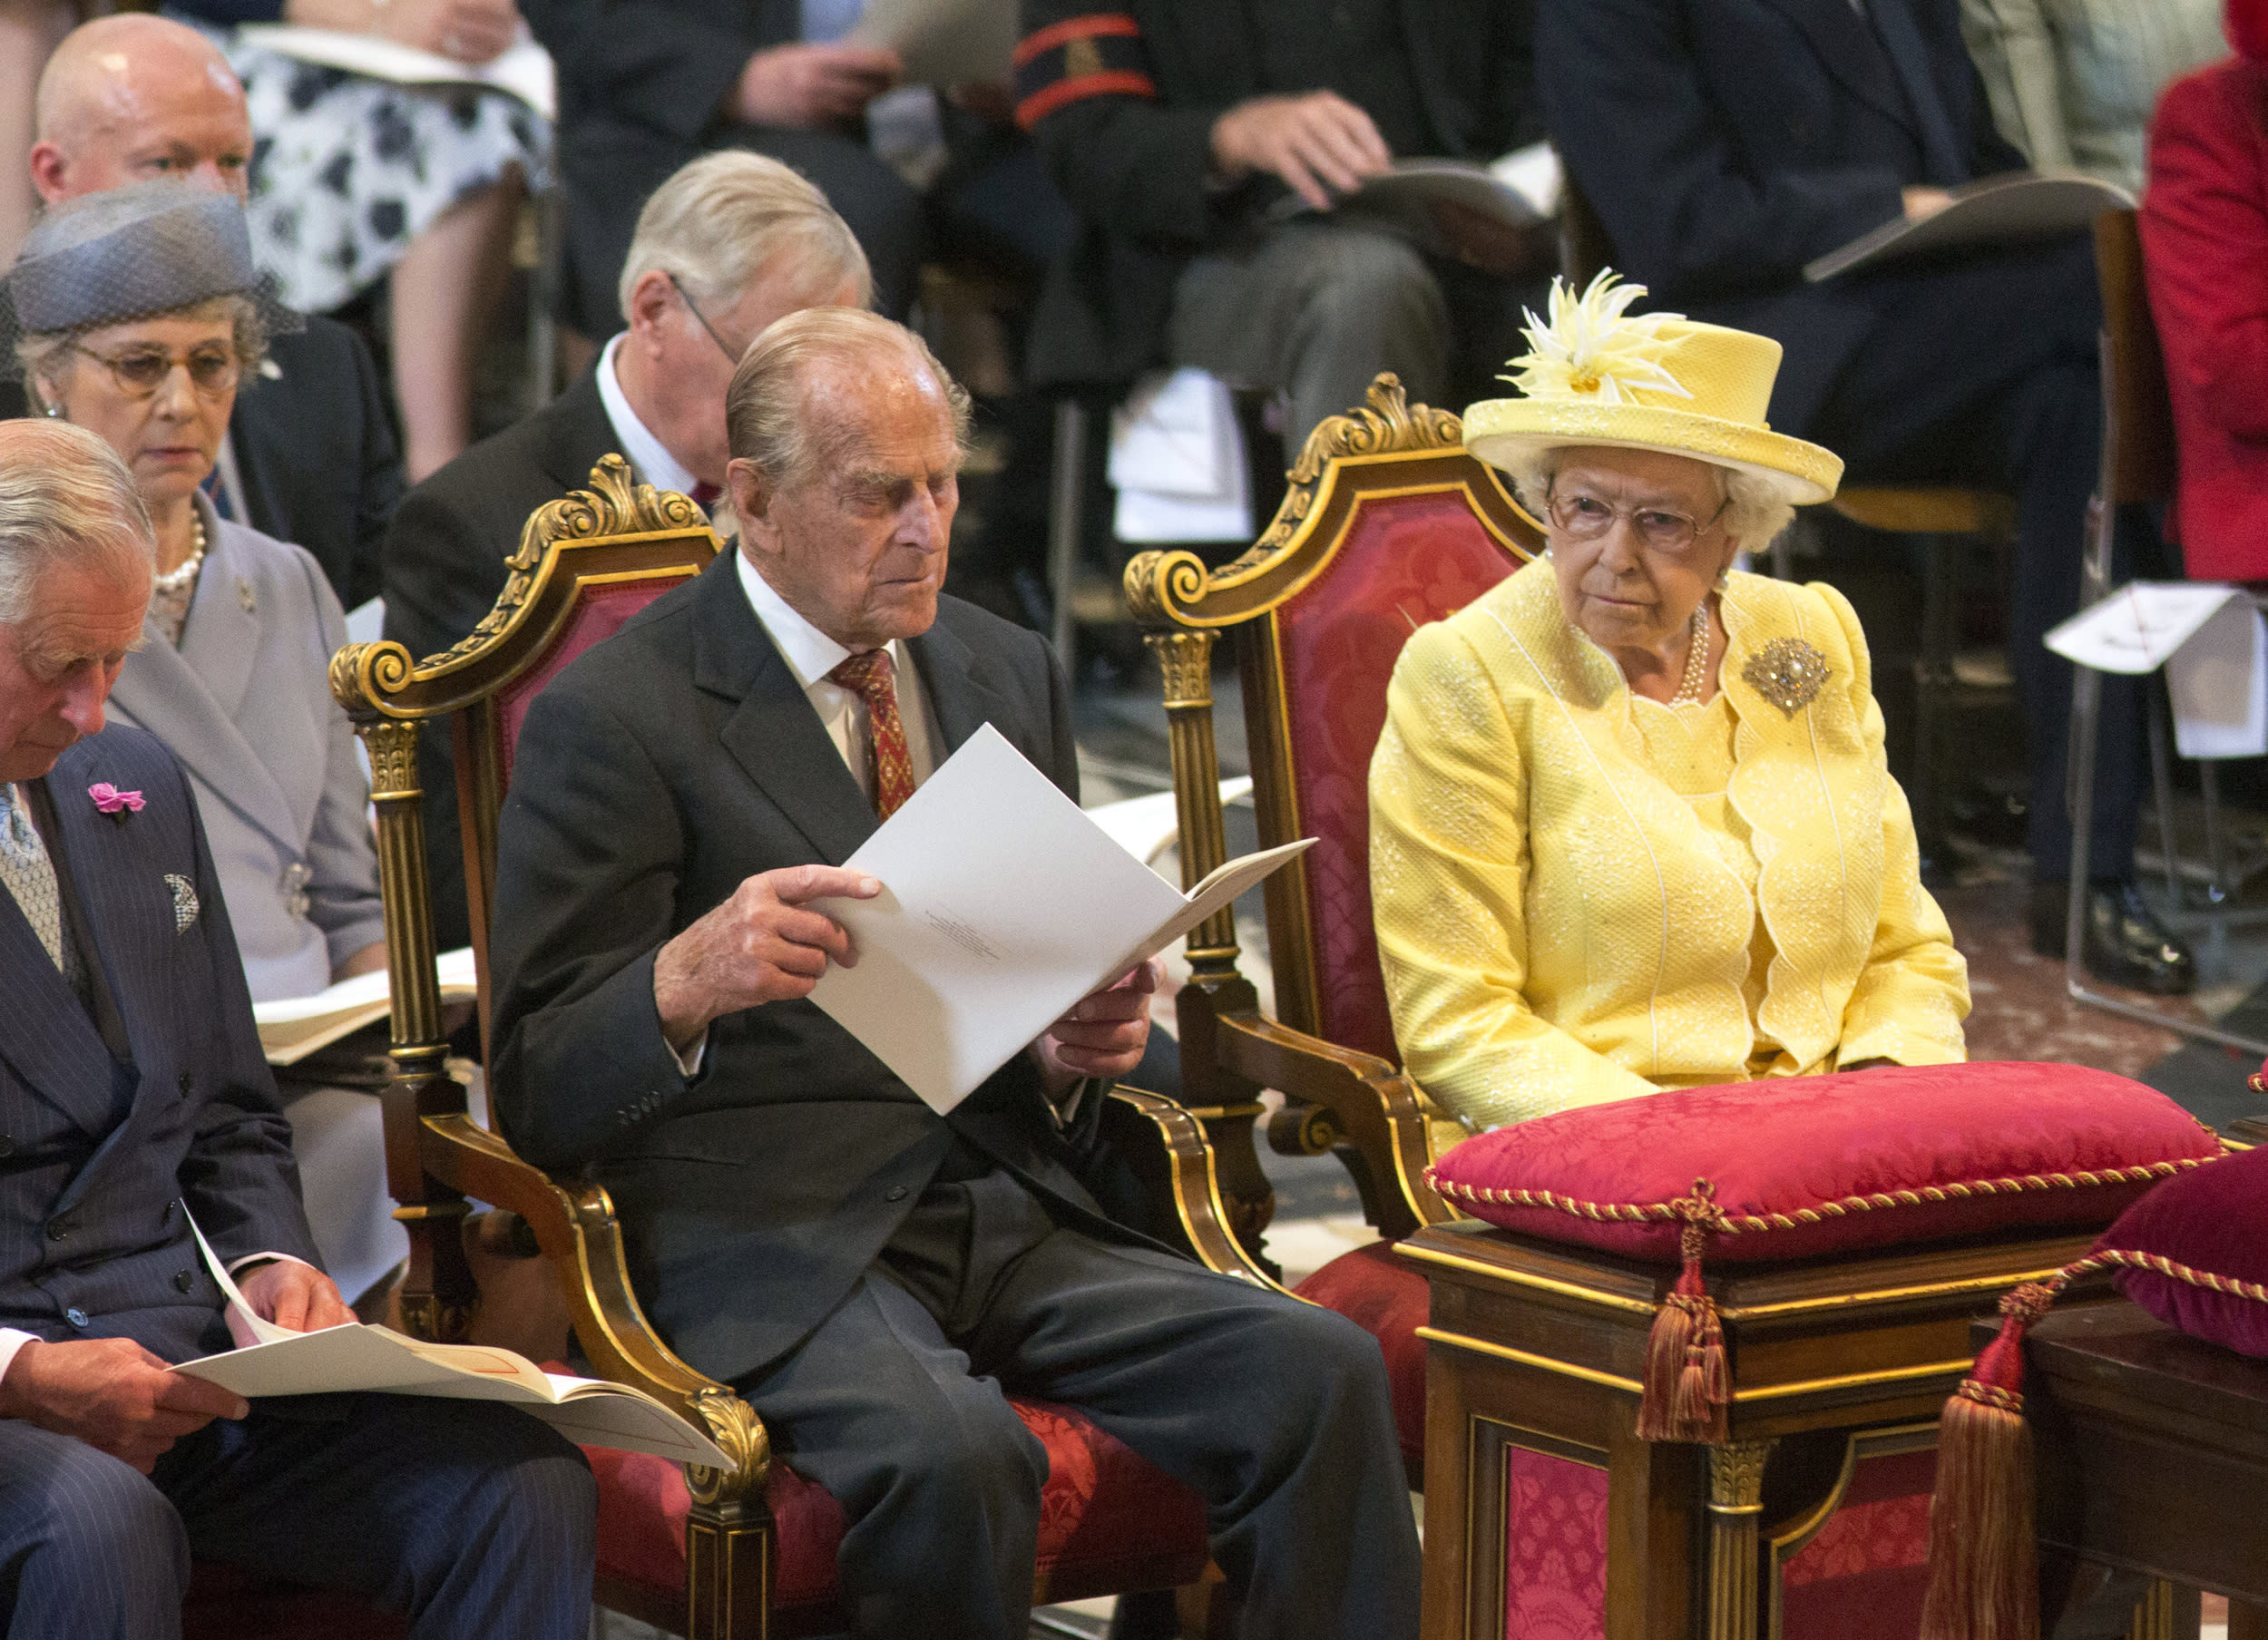 Britain's Queen Elizabeth II and Prince Philip attend a National Service of Thanksgiving to mark the 90th birthday of Britain's Queen Elizabeth II at St Paul's Cathedral in London, Friday, June 10, 2016. Queen Elizabeth II is celebrating her official 90th birthday with a three-day series of festivities starting Friday, on what is also her husband Prince Philip's 95th birthday. The queen's real birthday is in April. (Ian Vogler/Pool Photo via AP)